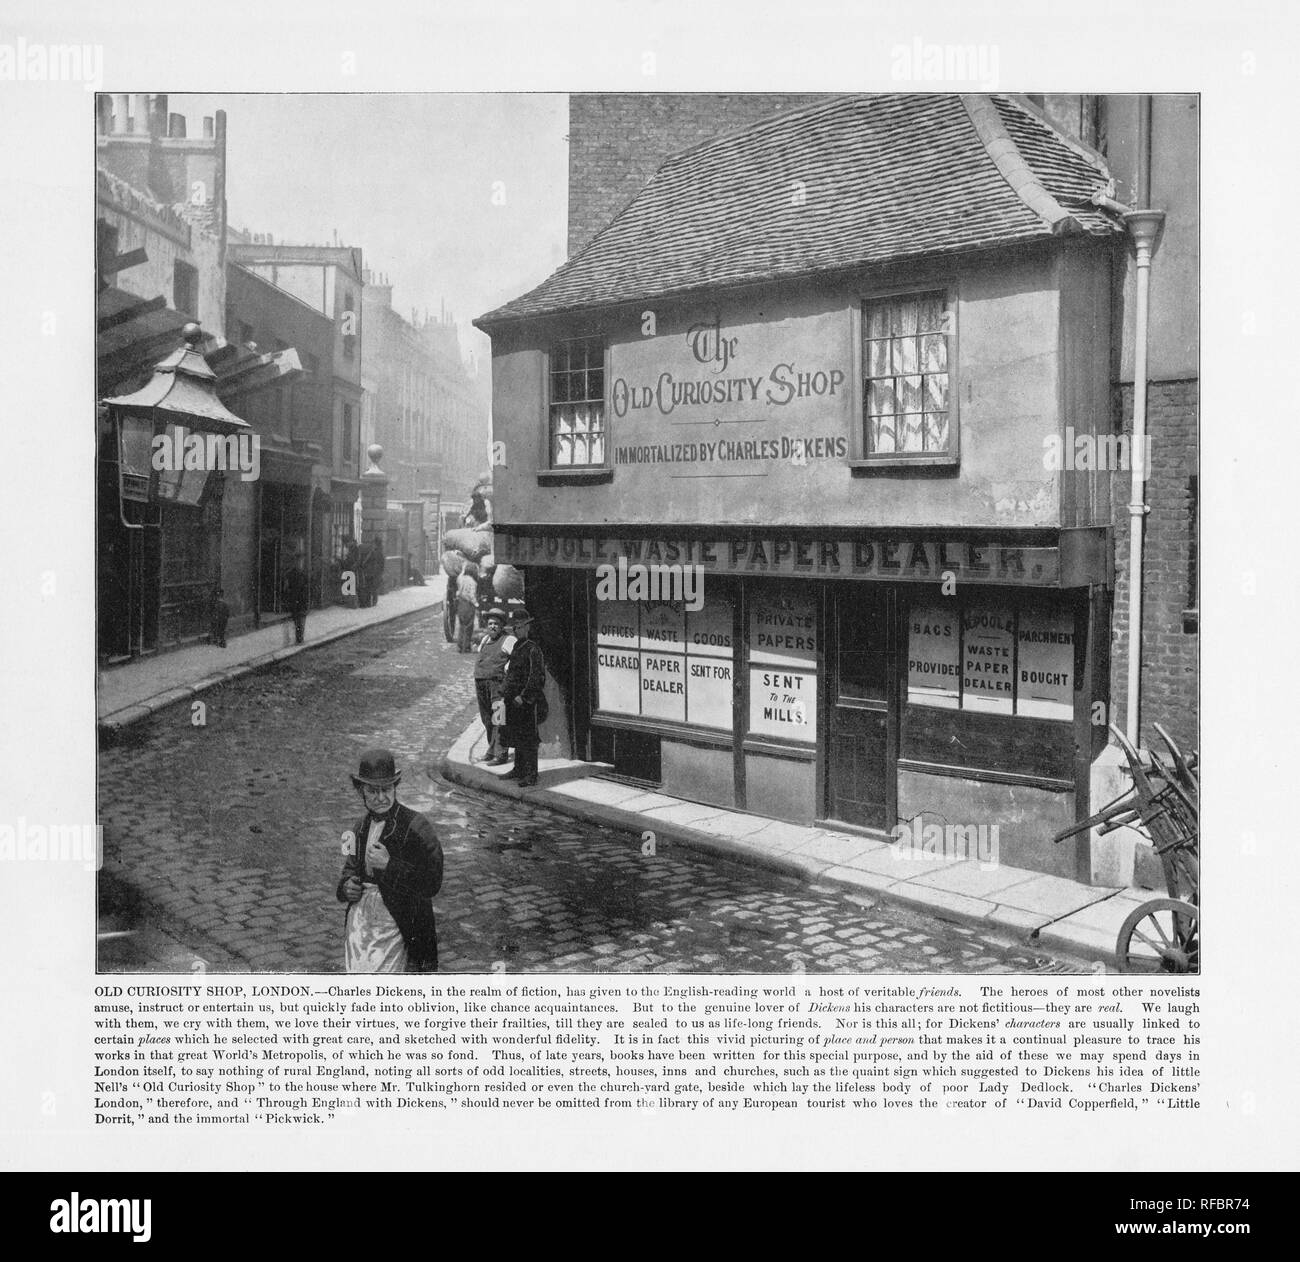 Old Curiosity Shop, London, Antique London Photograph, 1893